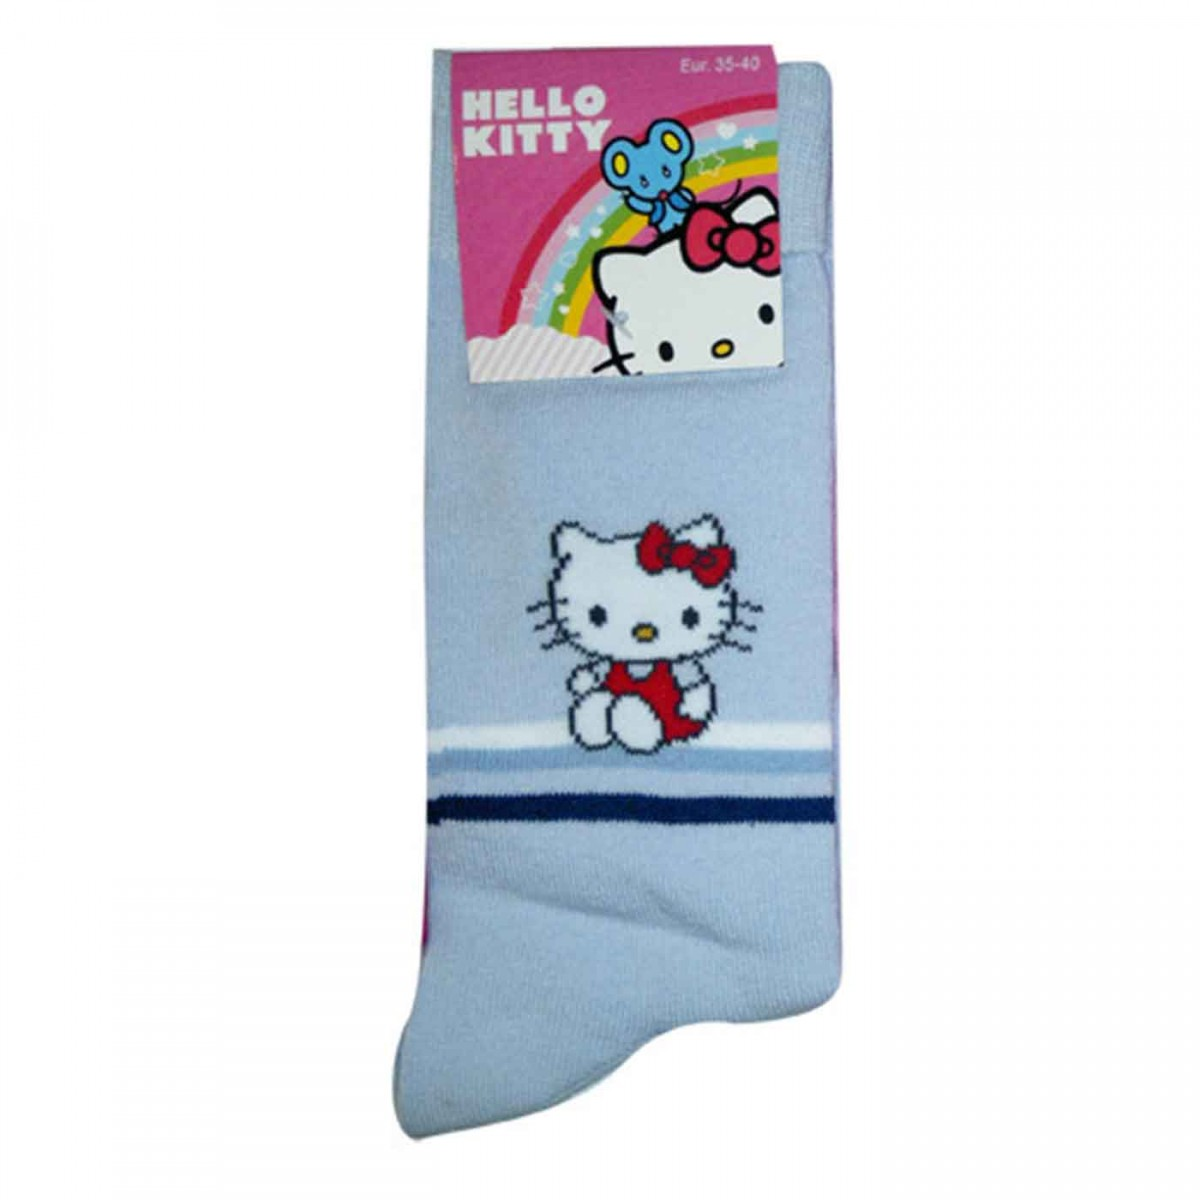 Hello Kitty Socken hellblau